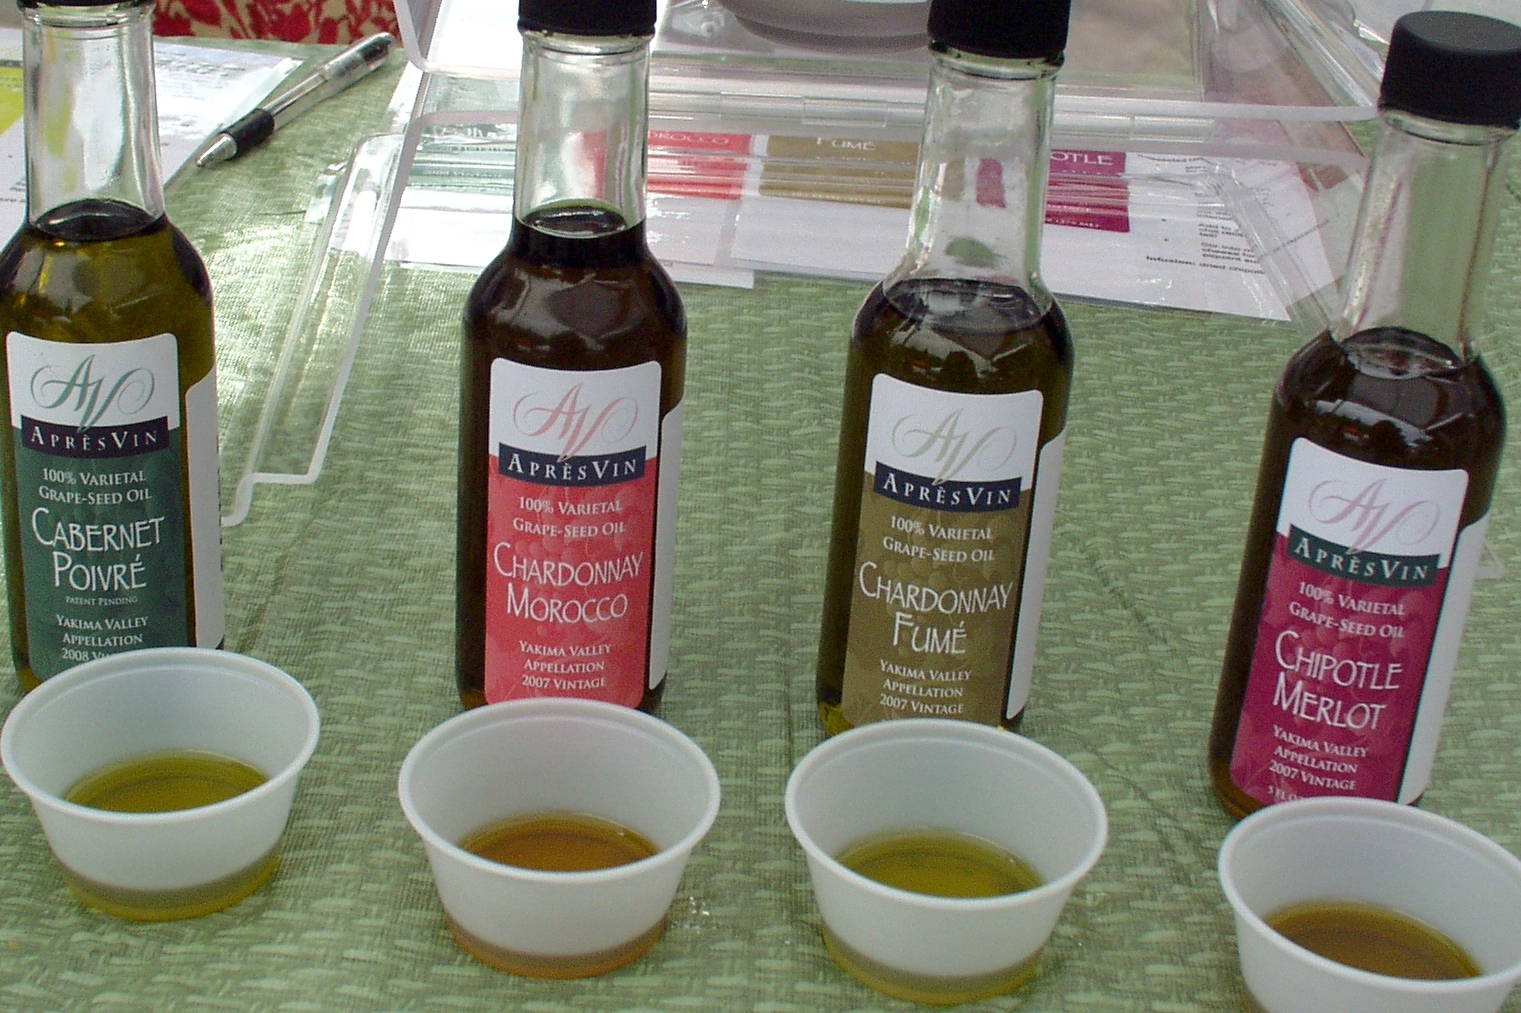 Just a sampling of the grapeseed oil flavors offer by Apres Vin at Wallingford Farmers Market. Photo copyright 2009 by Zachary D. Lyons.